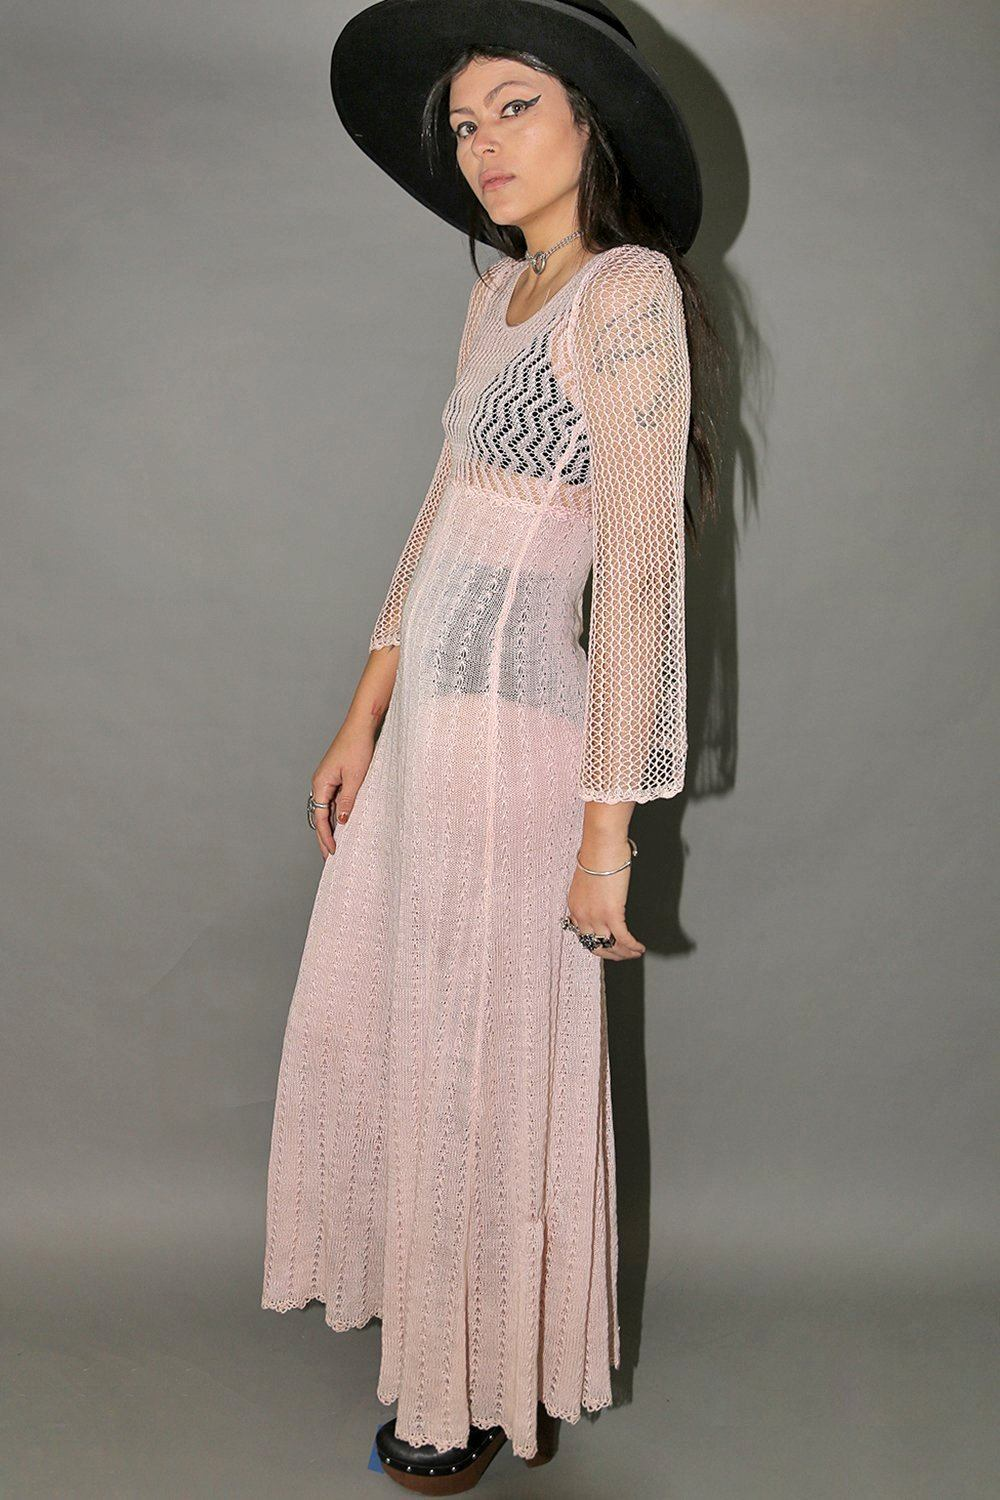 Pink Lemonade Sheer Knit Floor Length Bell Sleeve Dress, Dresses, Cru Le Fix